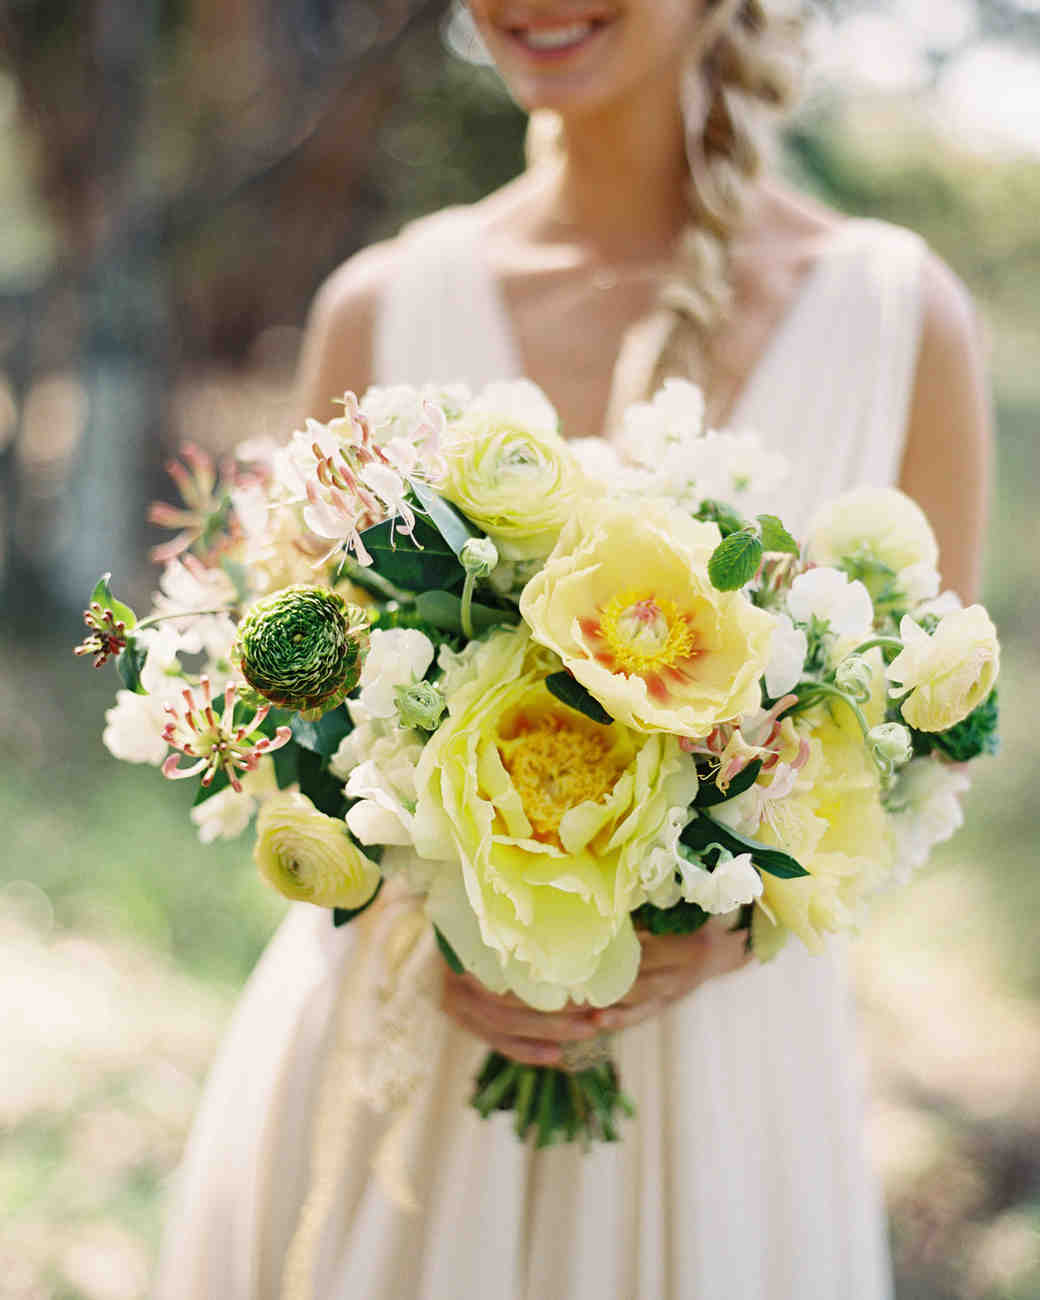 Yellow Wedding Flowers: 20 Yellow Wedding Bouquets To Brighten Up Your Big Day